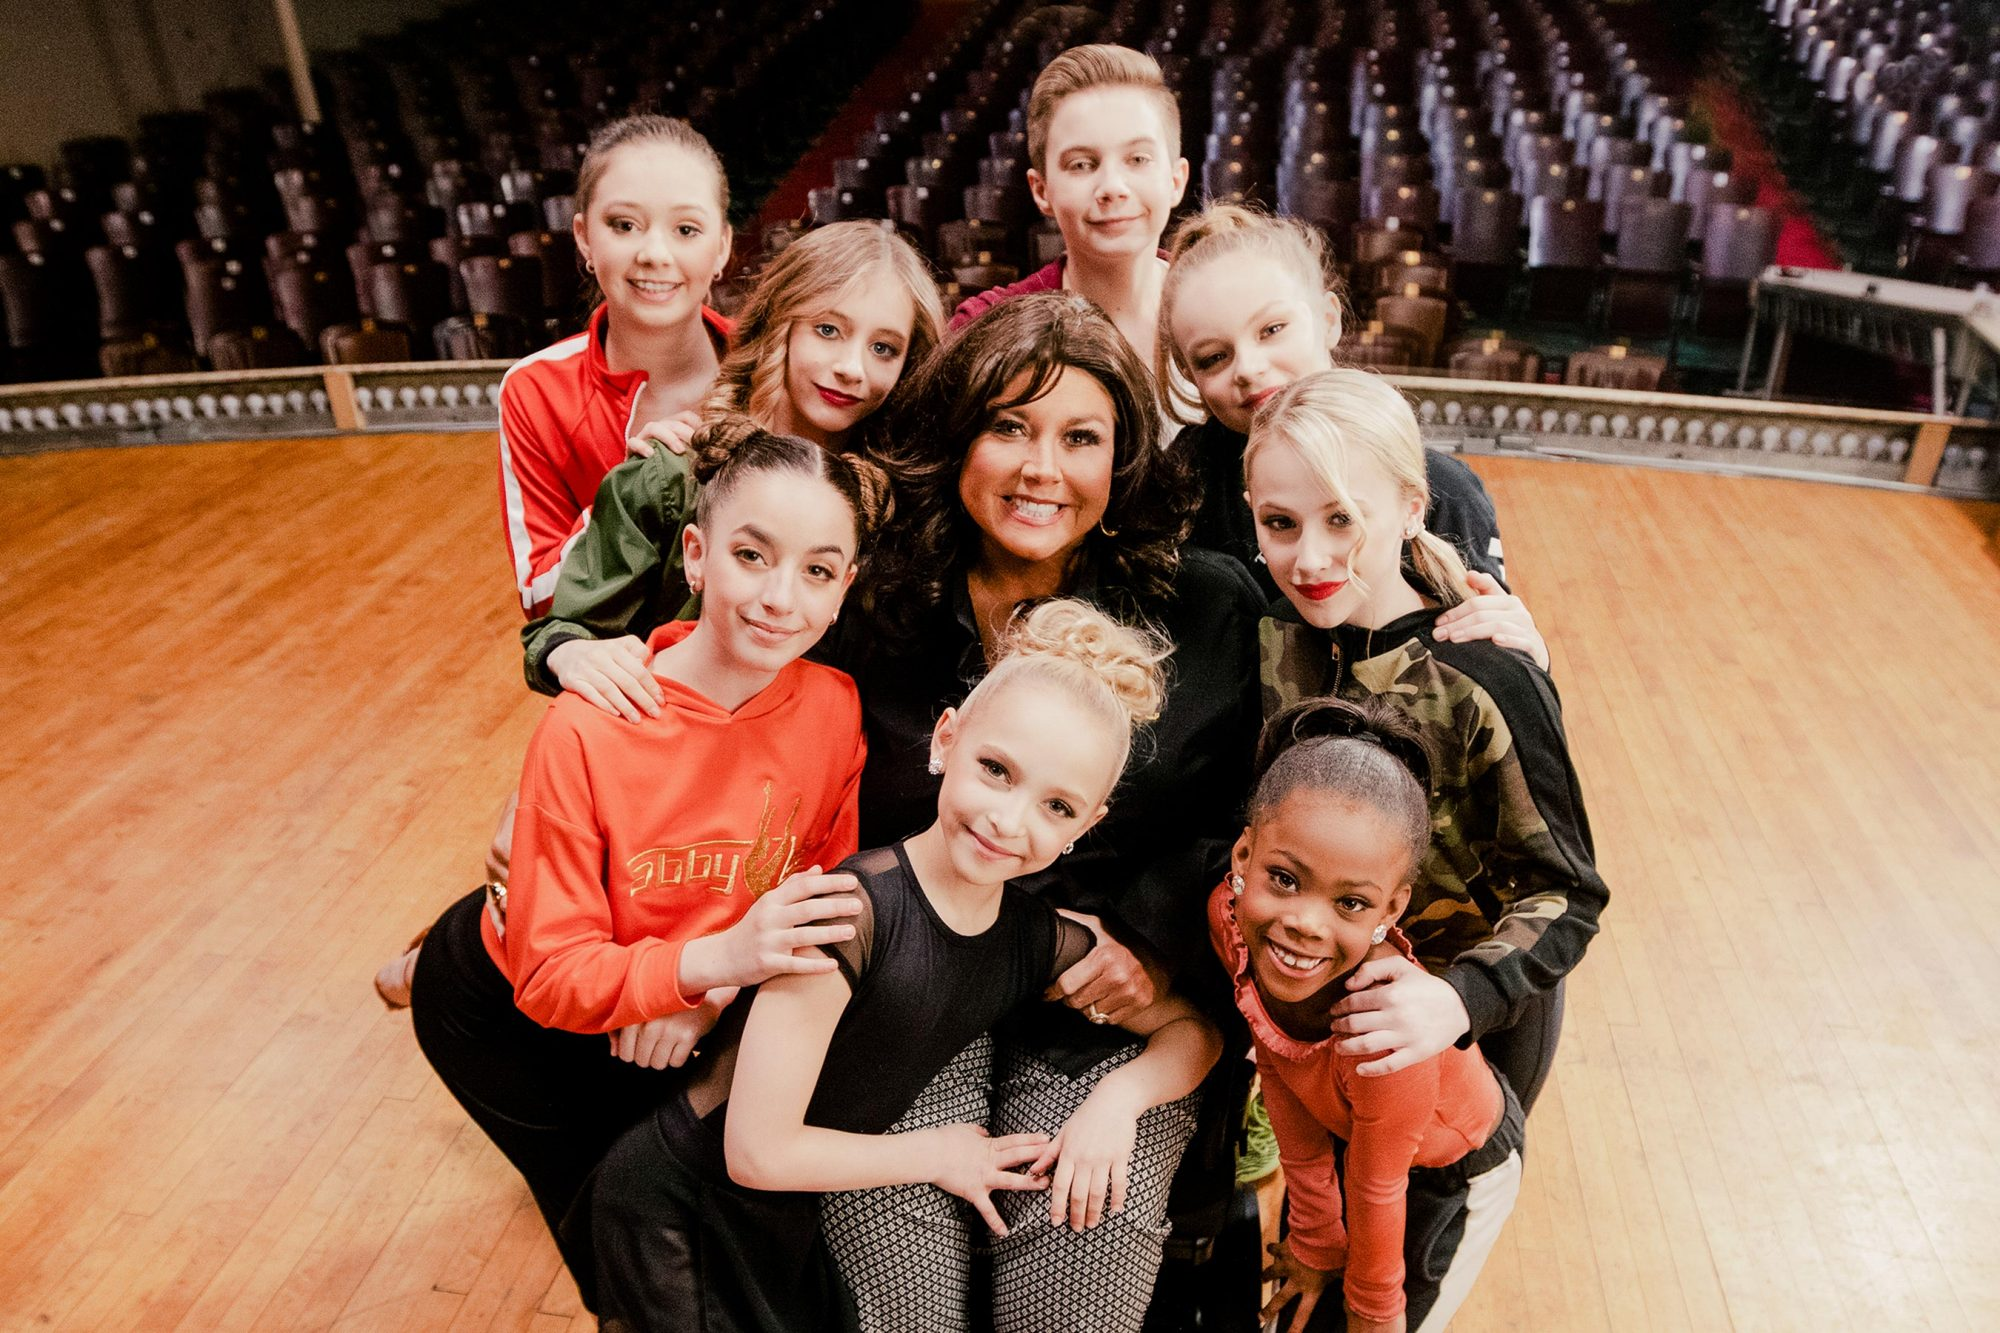 Dance Moms Abby Lee Miller stars in the new season of Dance Moms premiering June 4th at 9pm ET/PT on Lifetime. Photo by Annie O'Neill/Lifetime Copyright 2019